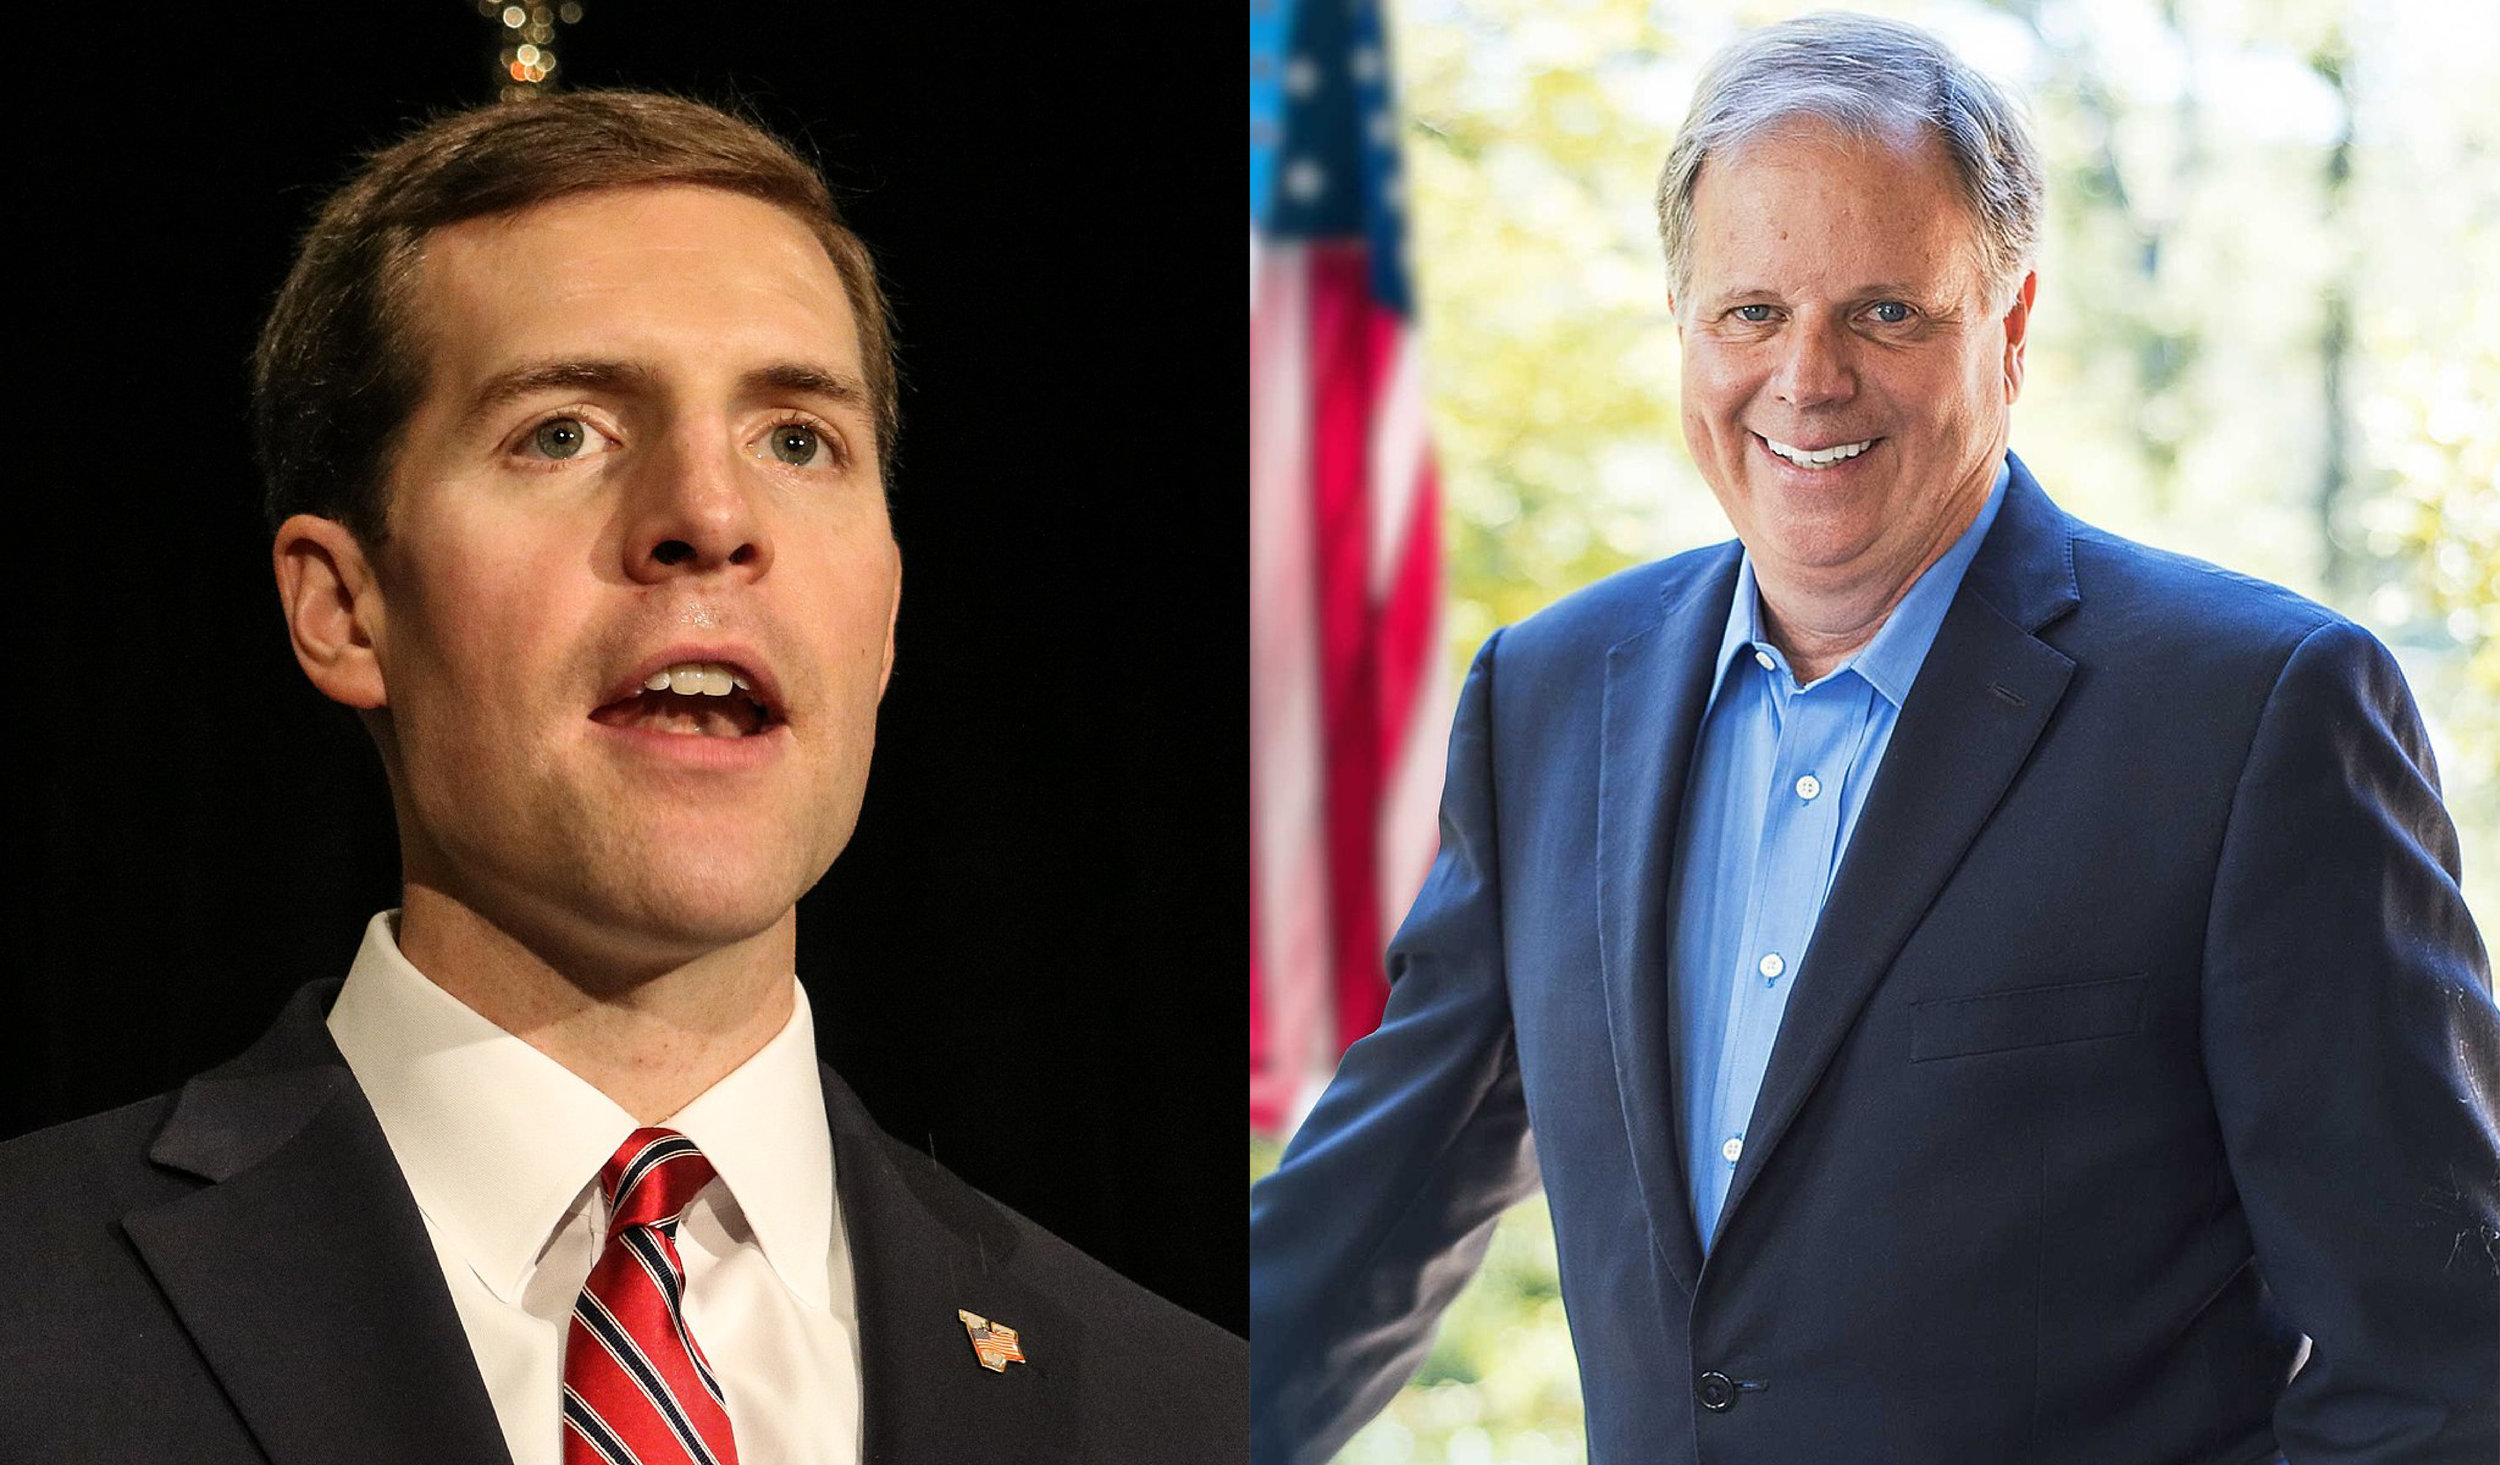 Links: Conor Lamb; Rechts: Doug Jones (Bild: Doug Jones for Senate Committee)